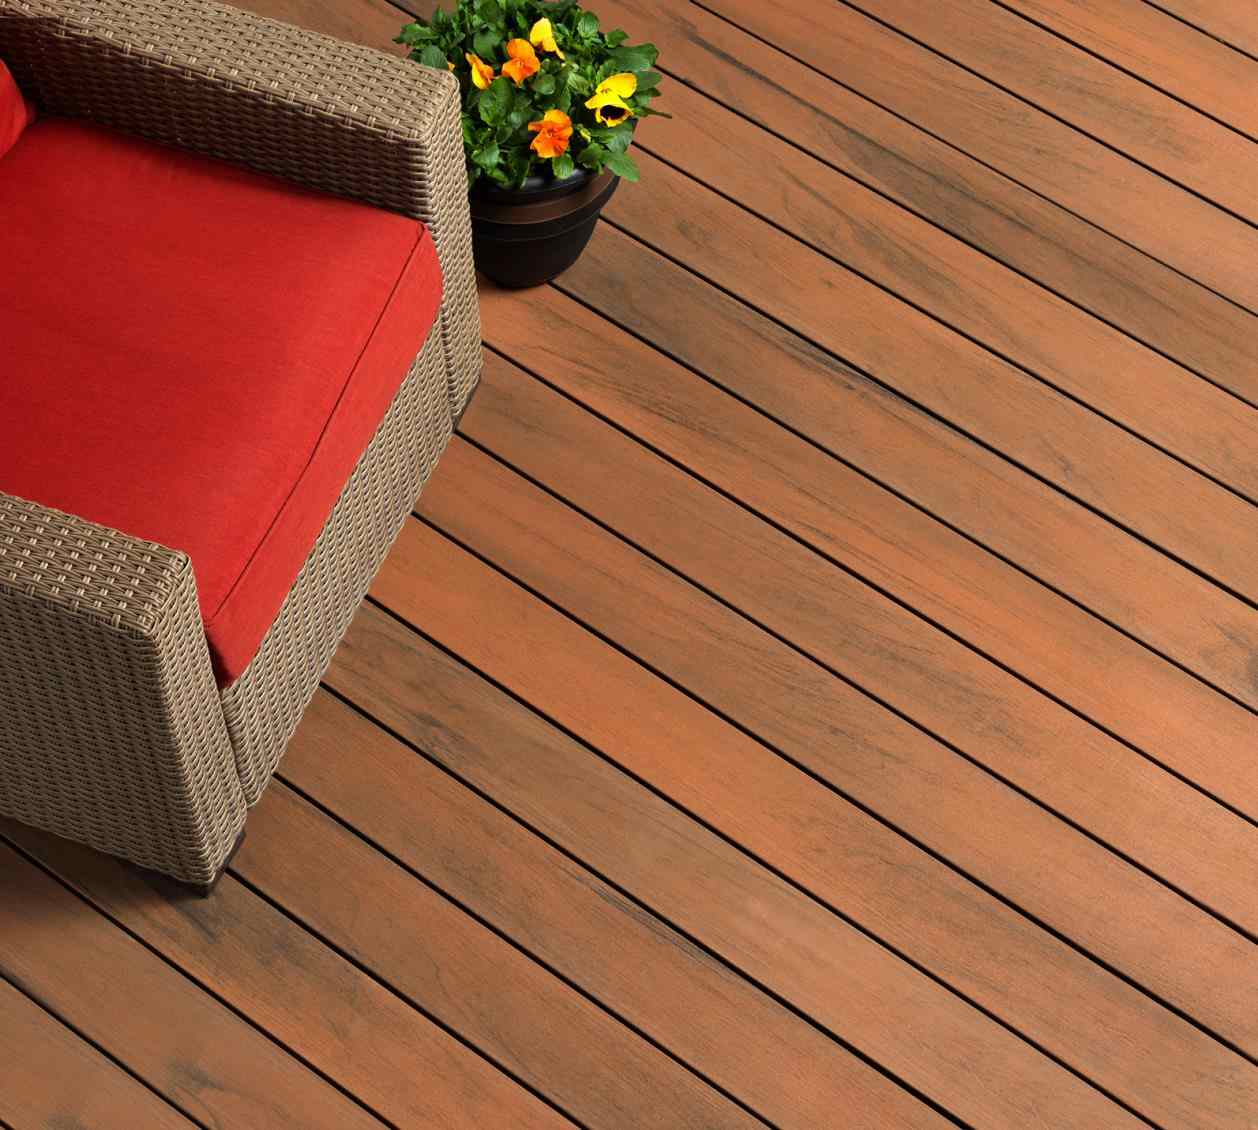 Installing A Composite Deck | Joist Spacing for Composite Decking | Installing Composite Decking